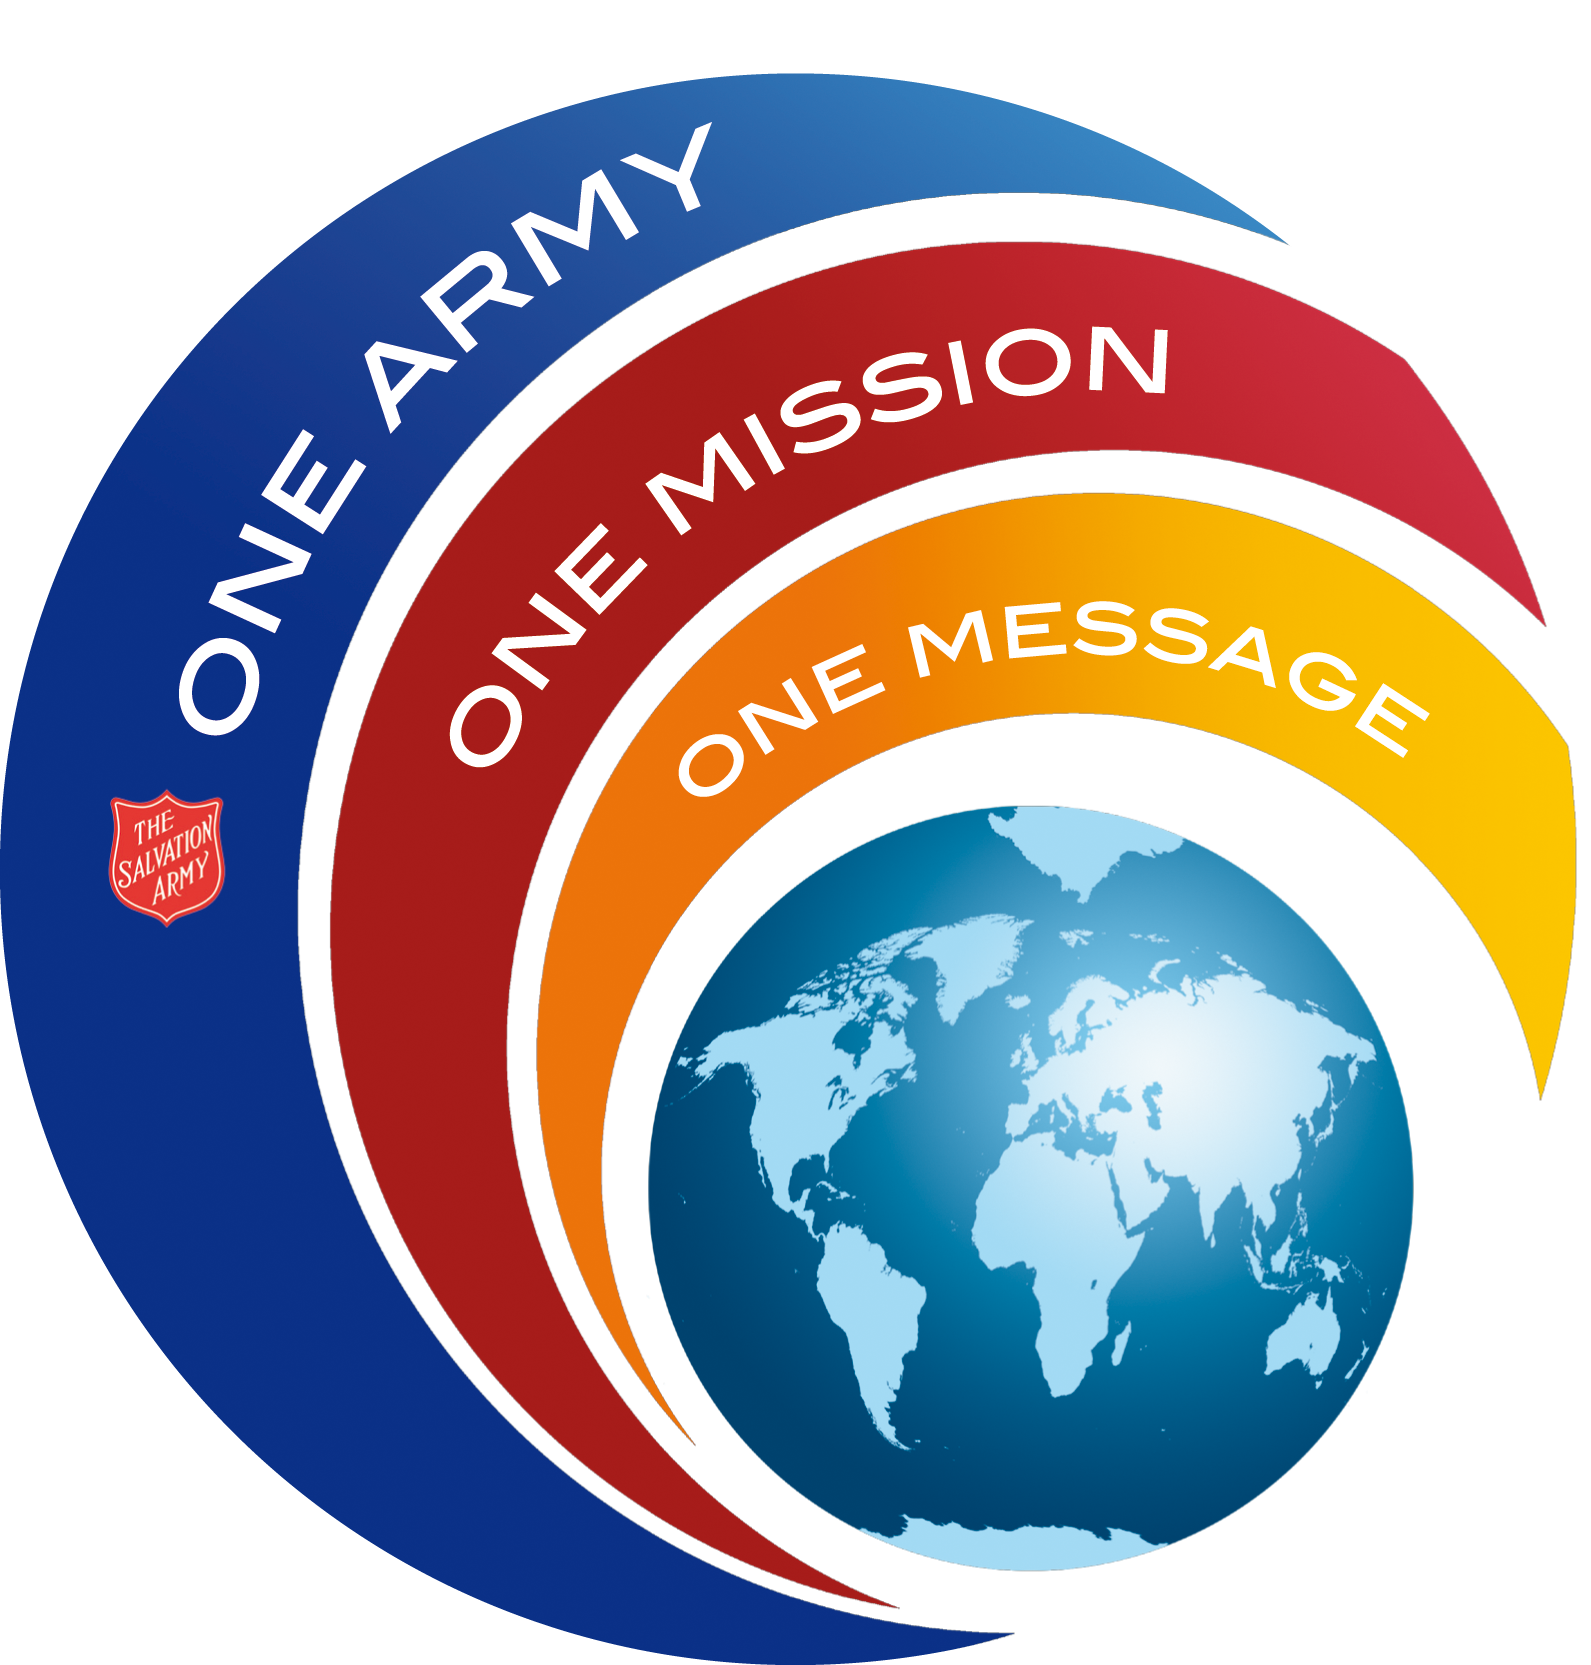 Salvation army png. The international resources pdf